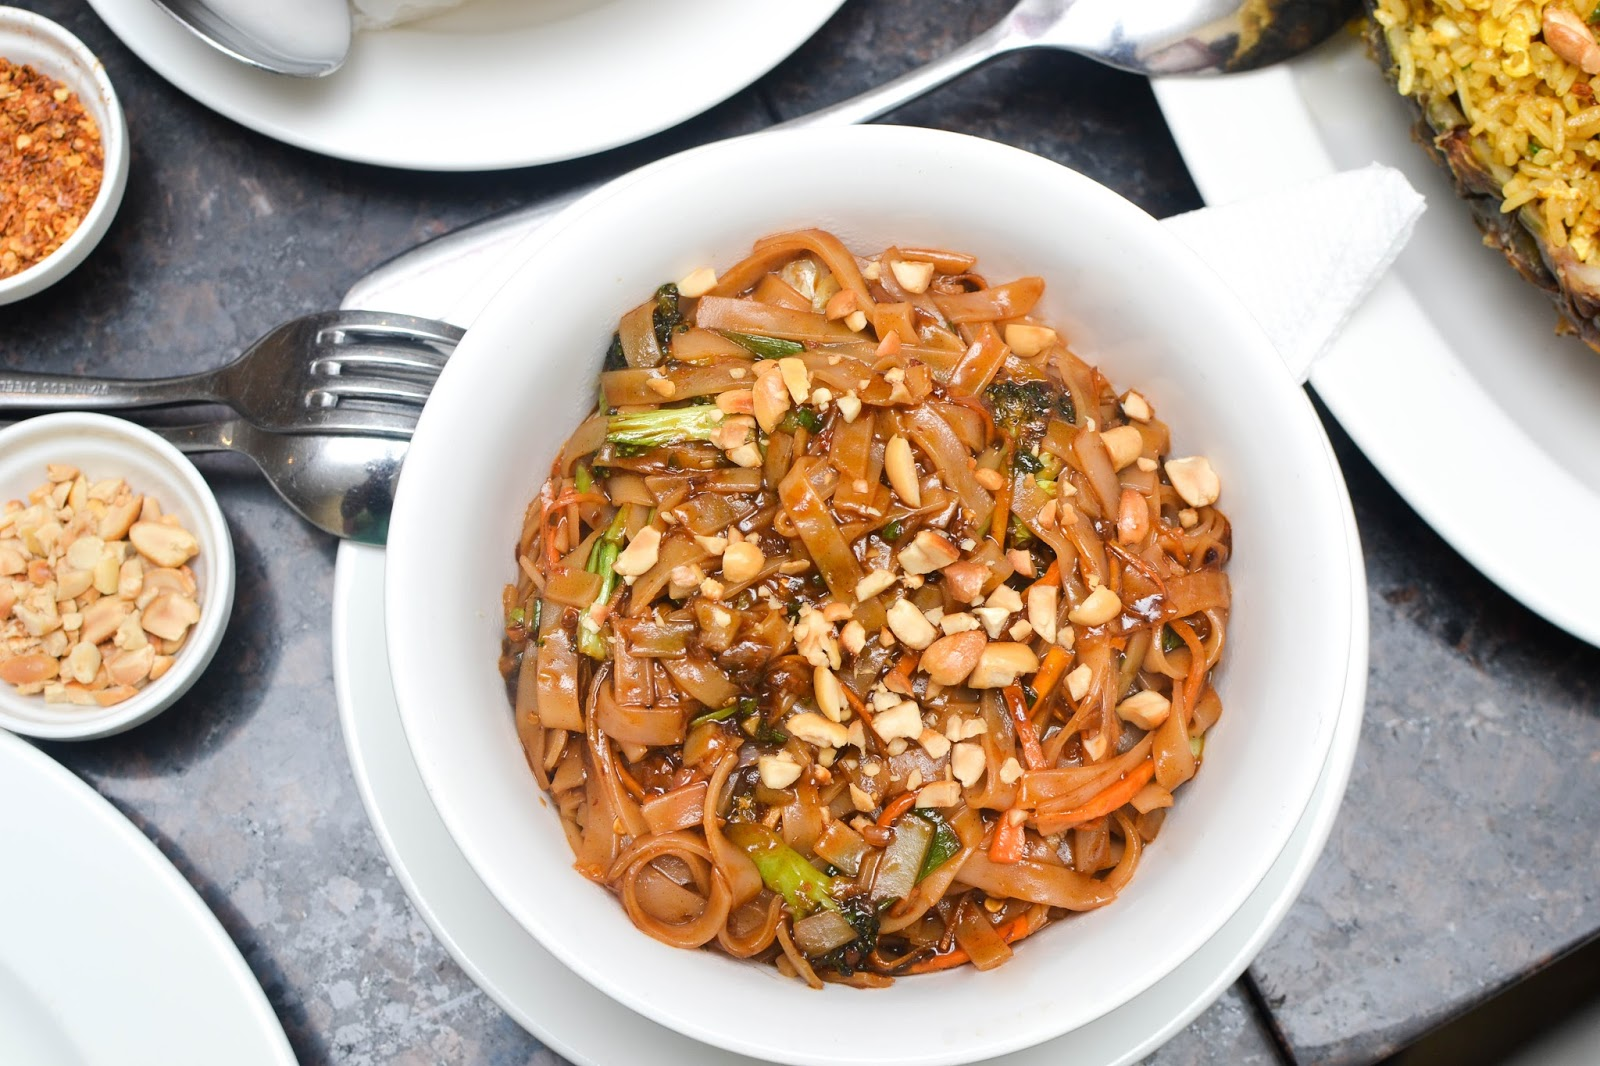 Pad thai noodles in lagos